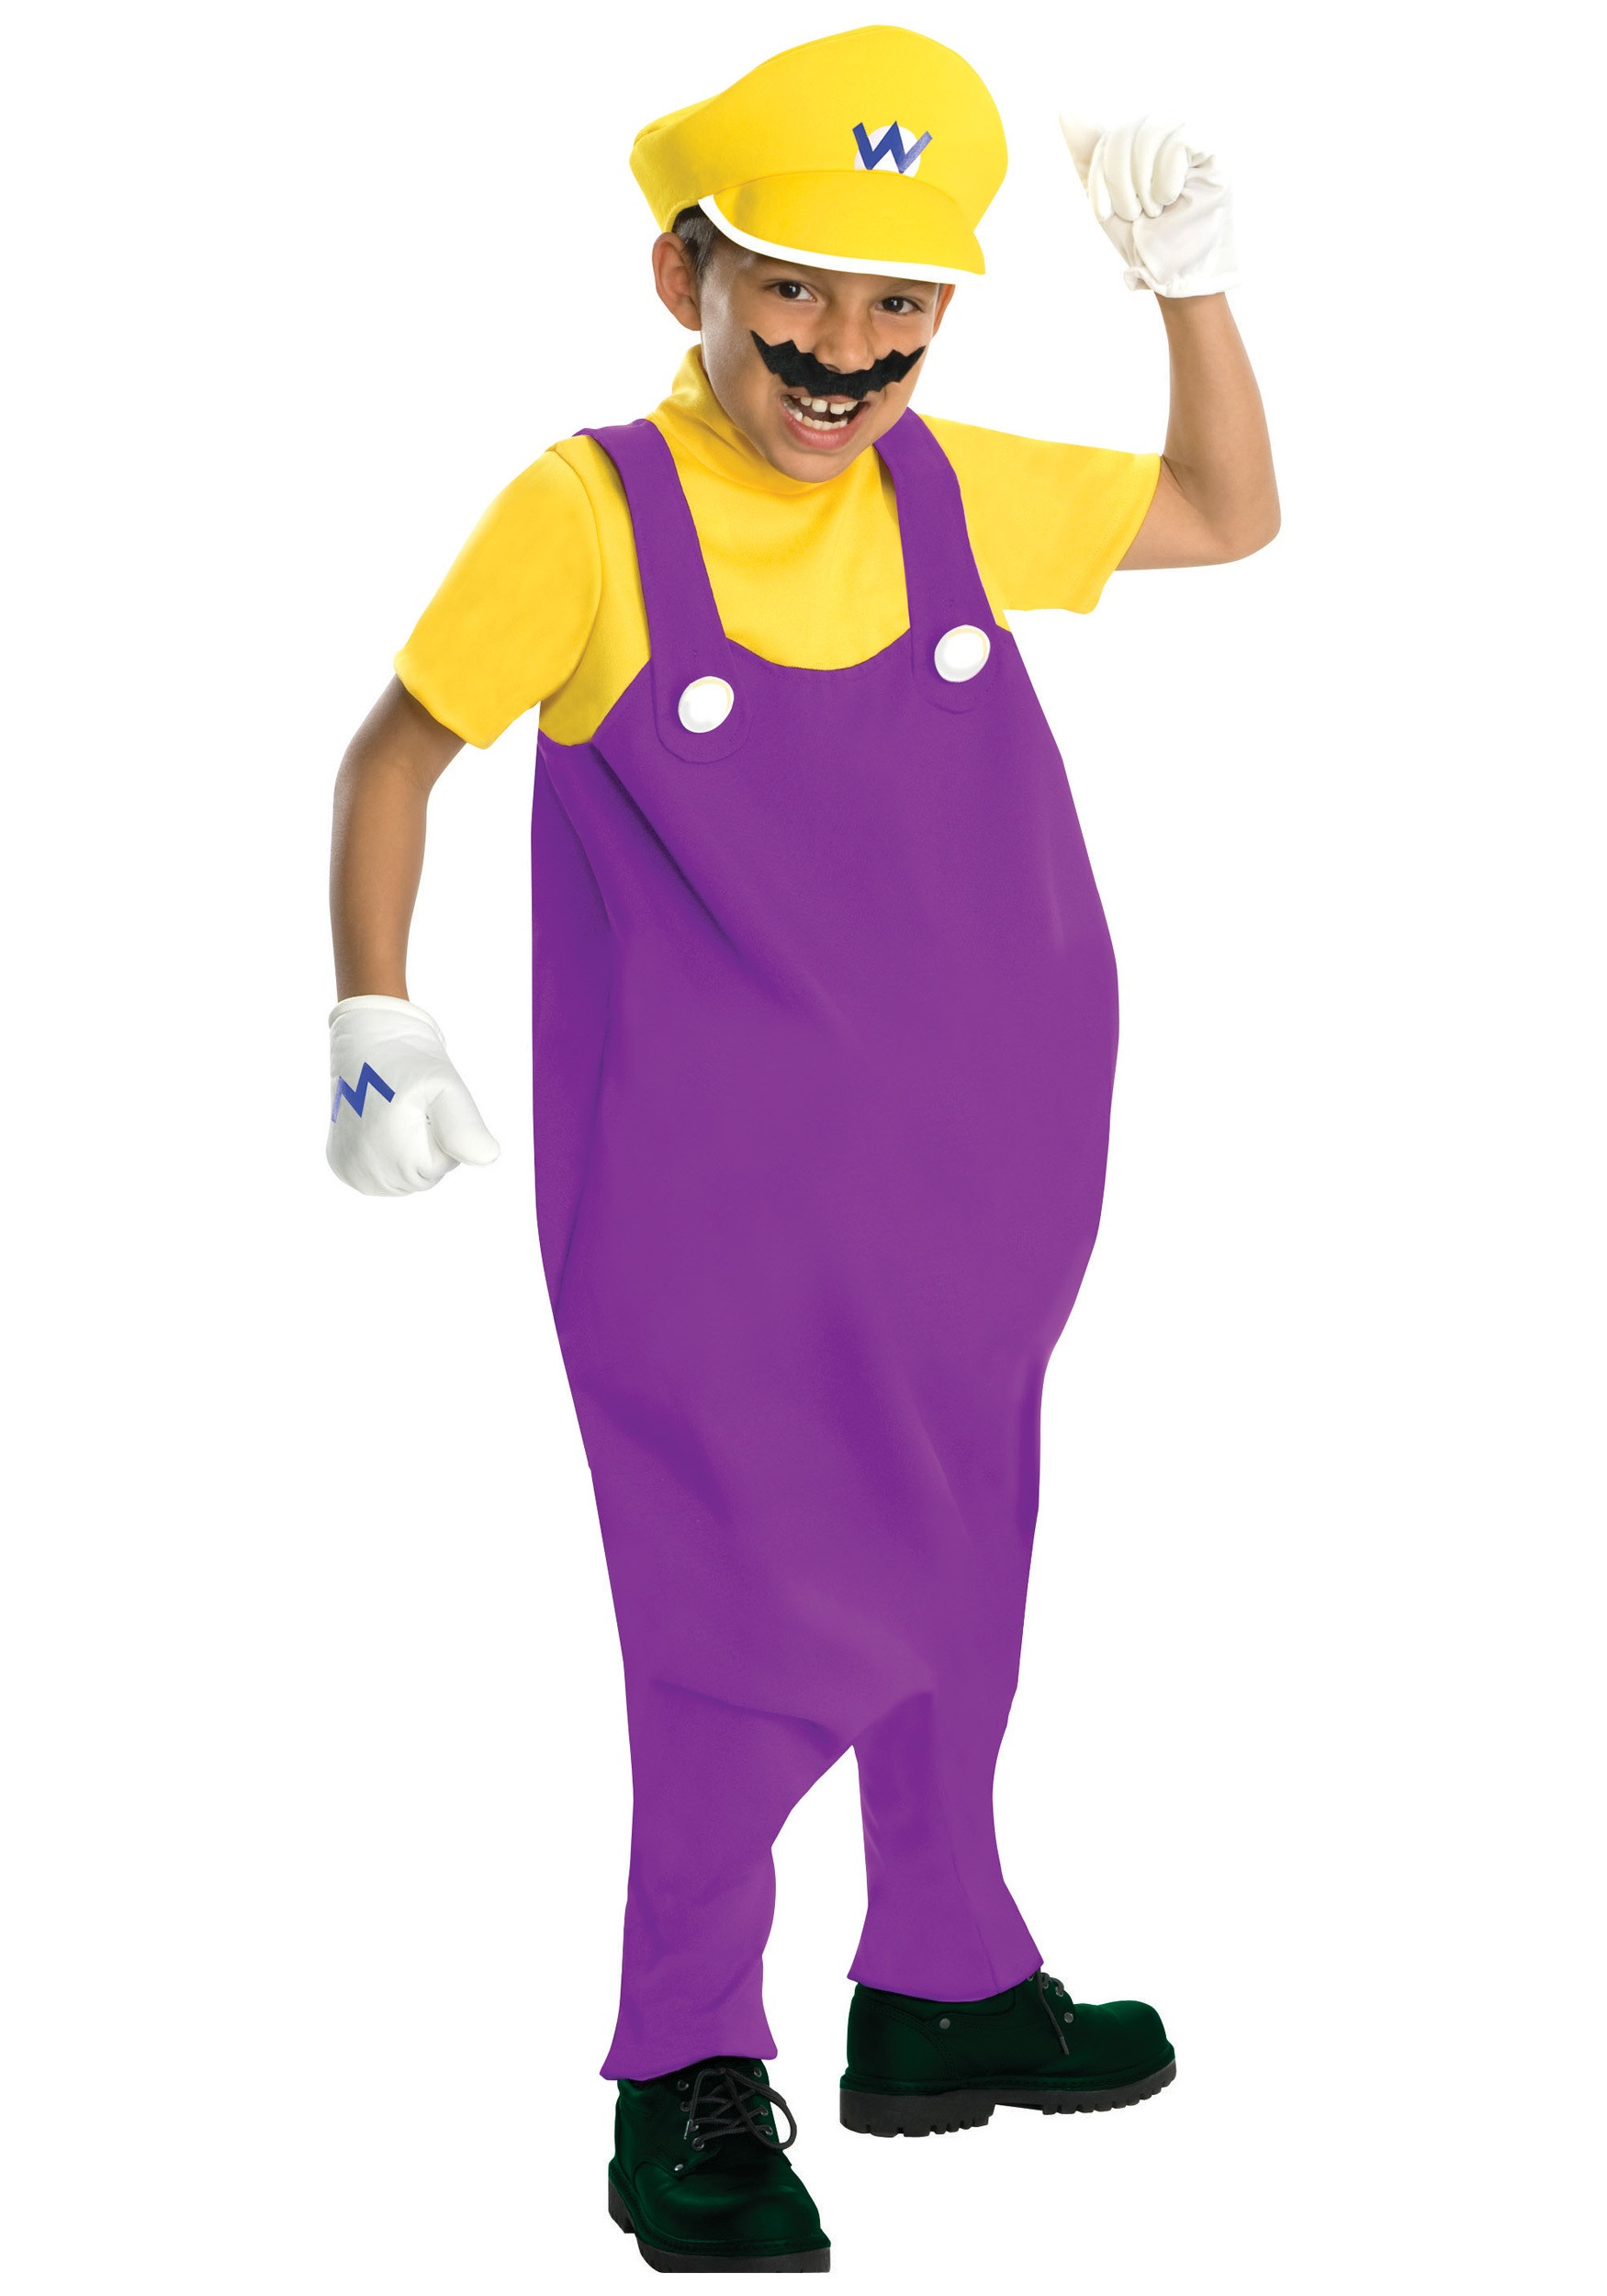 Best ideas about Wario Costume DIY . Save or Pin Deluxe Child Wario Costume Now.